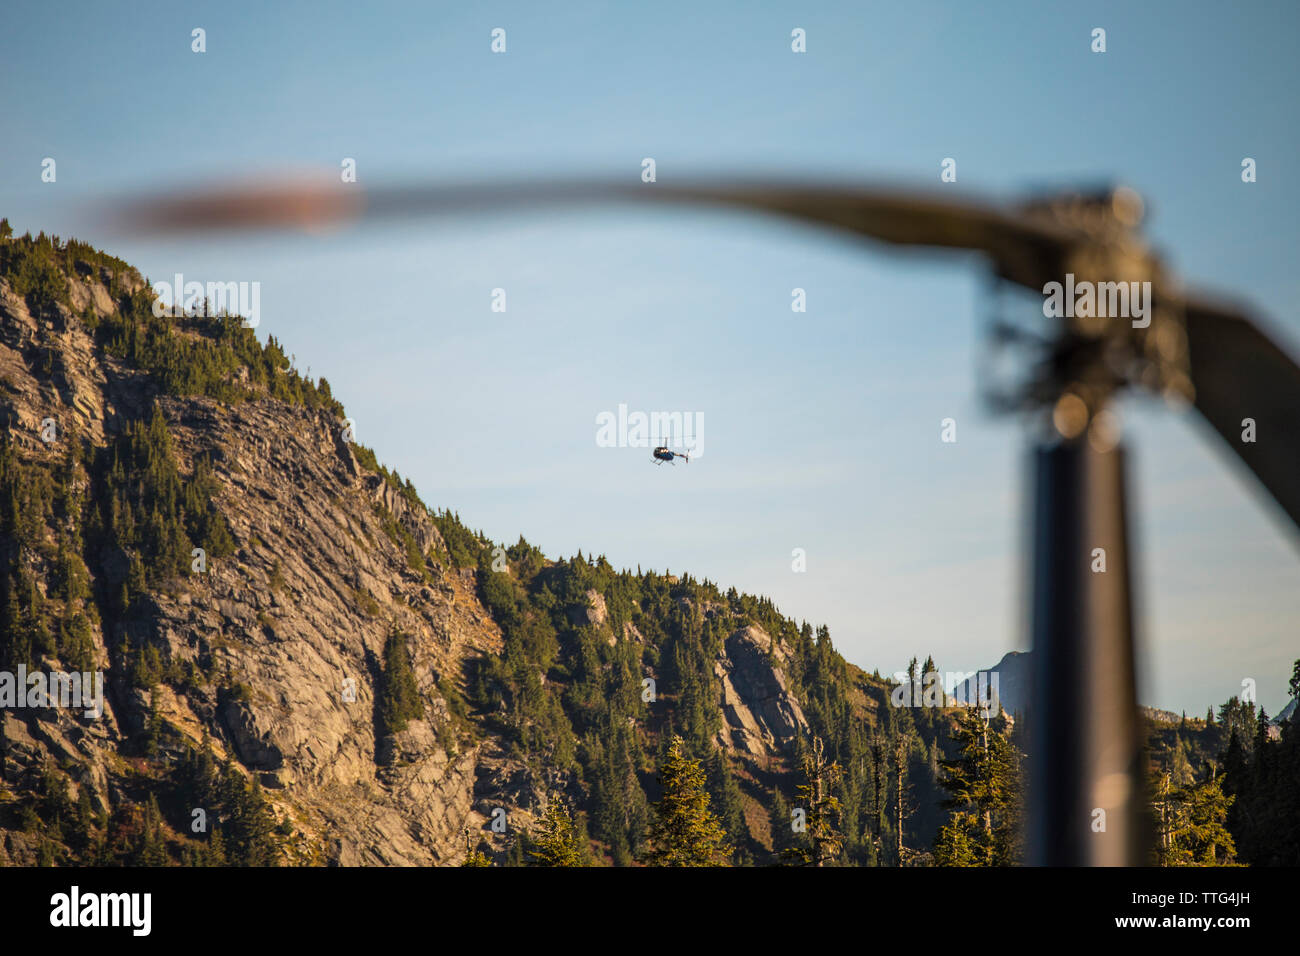 Helicopter flying over the Coast Mountain Range. Stock Photo